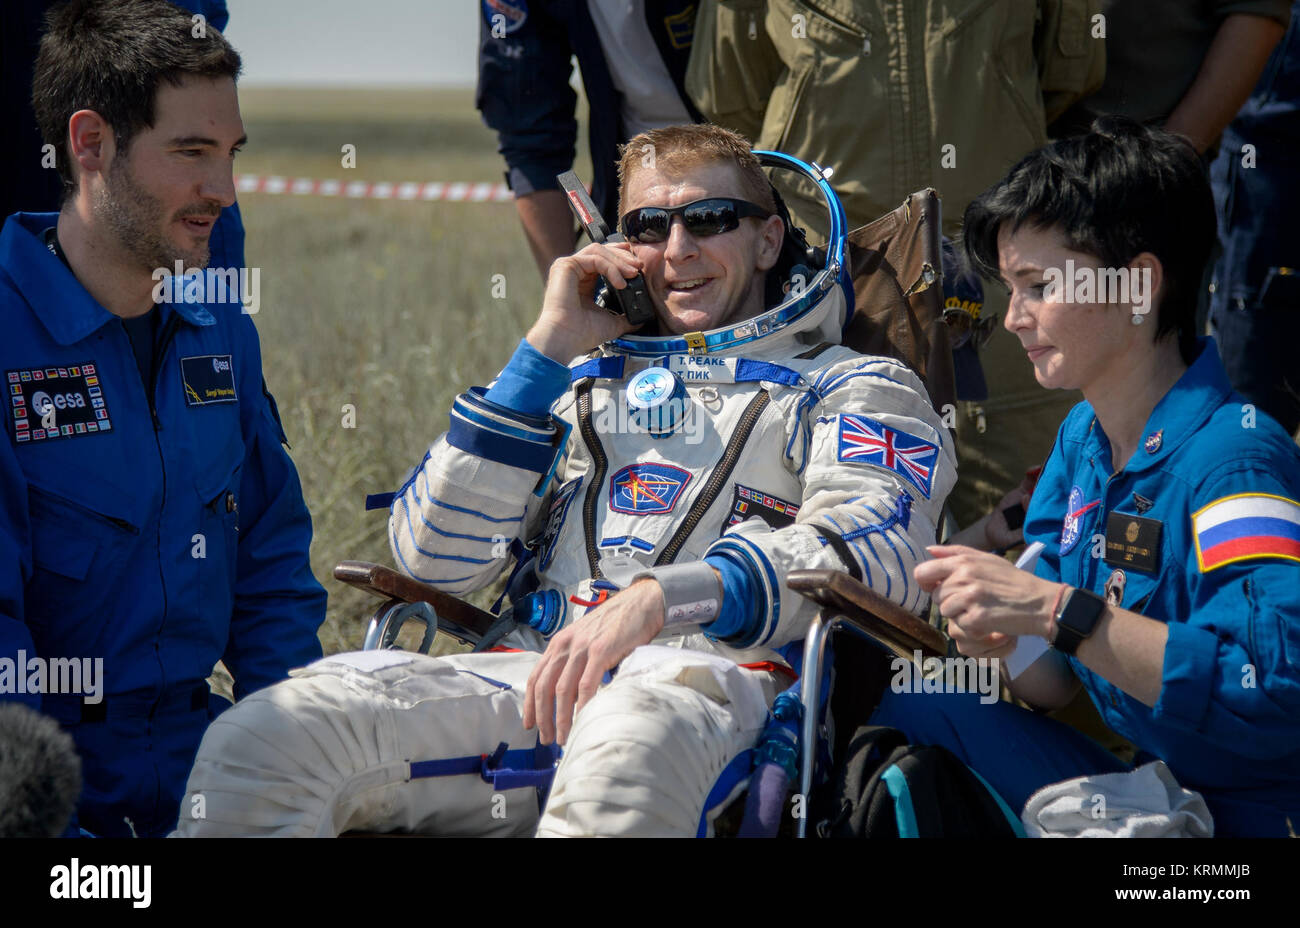 Tim Peake of the European Space Agency talks on a satellite phone in a chair outside the Soyuz TMA-19M spacecraft - Stock Image